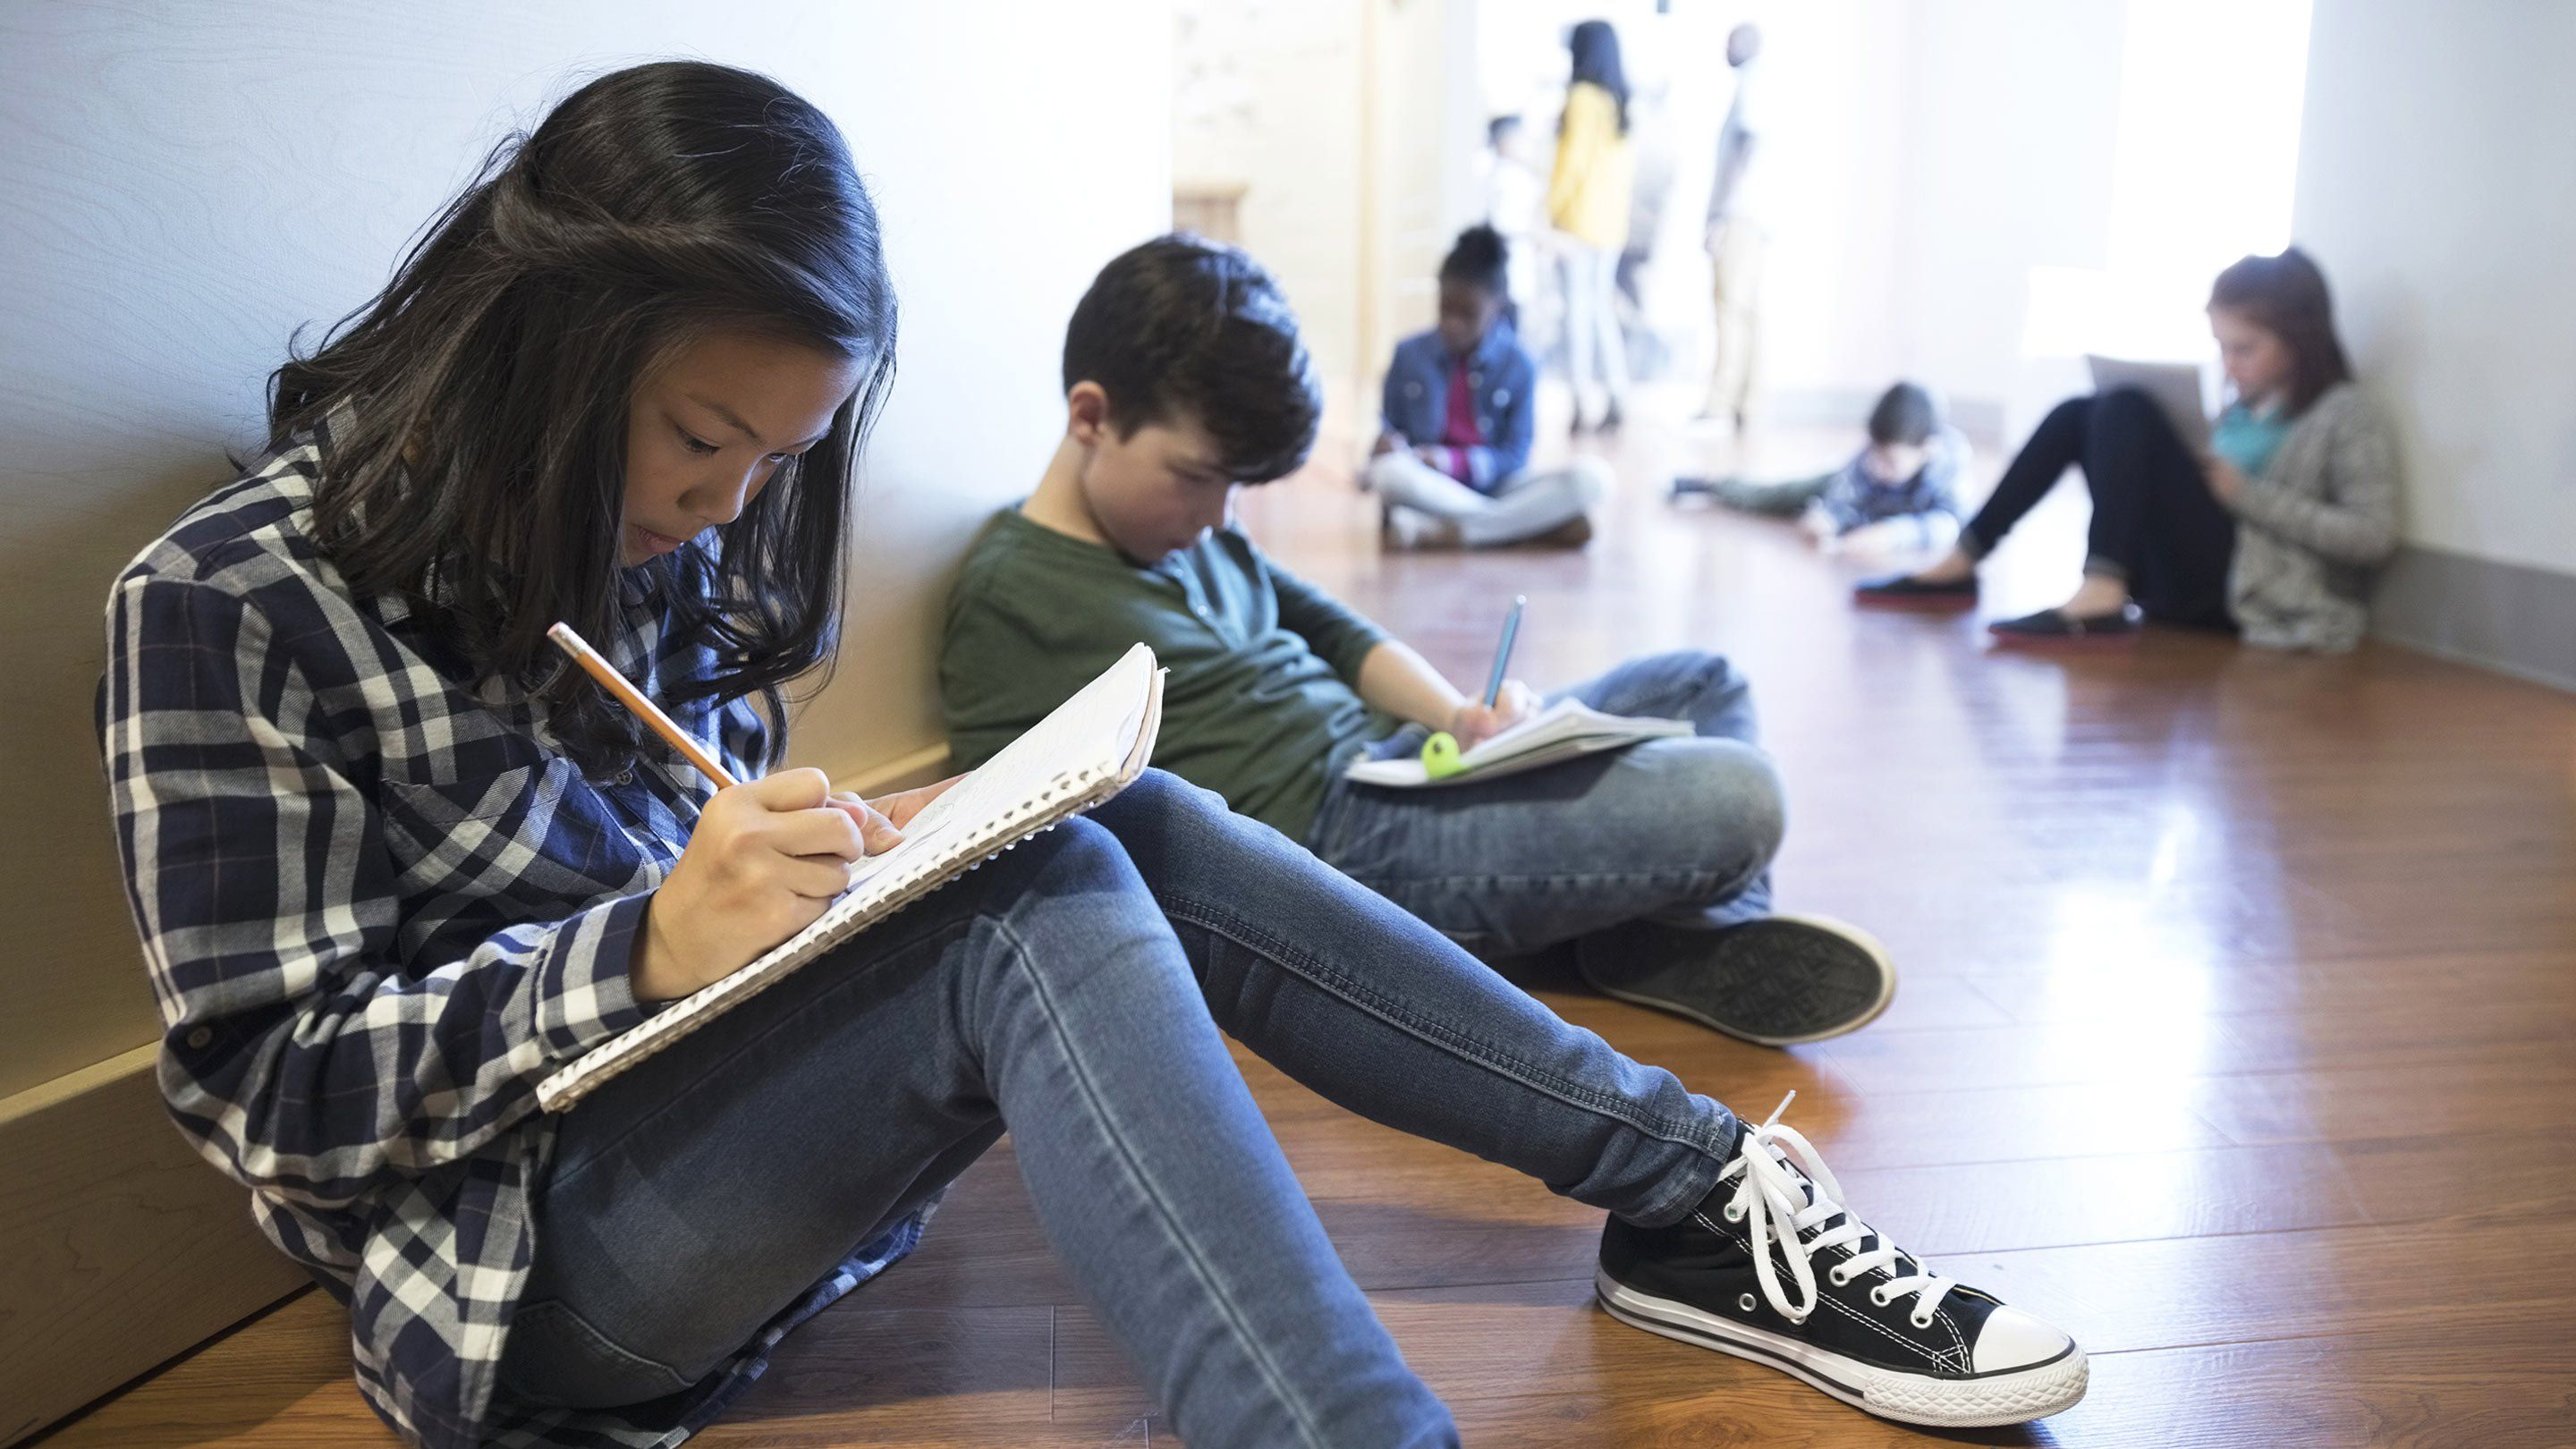 Students work independently while sitting in a school hallway.